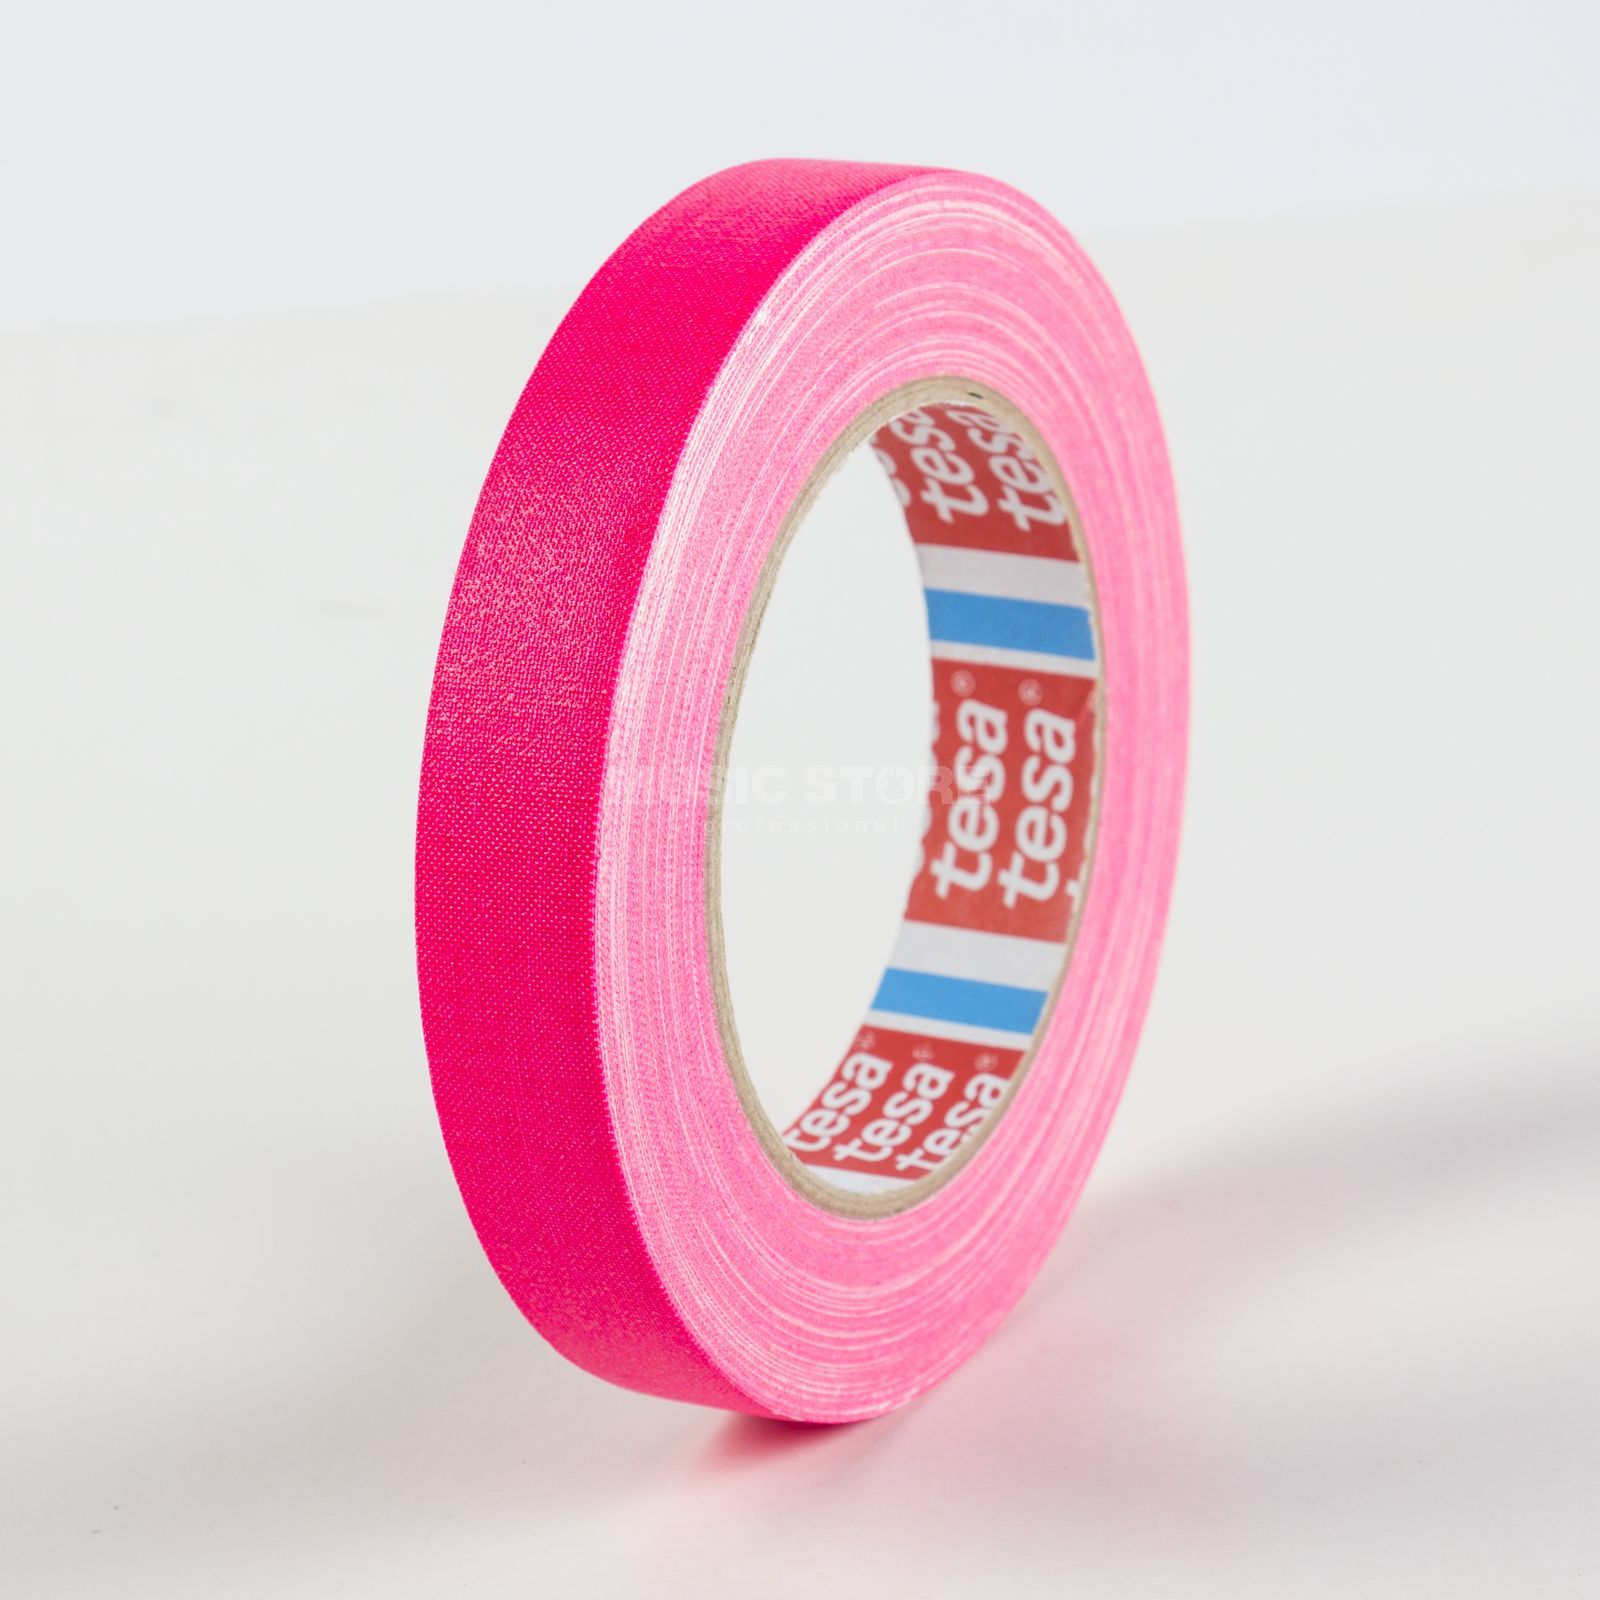 Tesa Highlight Gaffa Tape 4671 neonpink, 25m, 19 mm Produktbillede